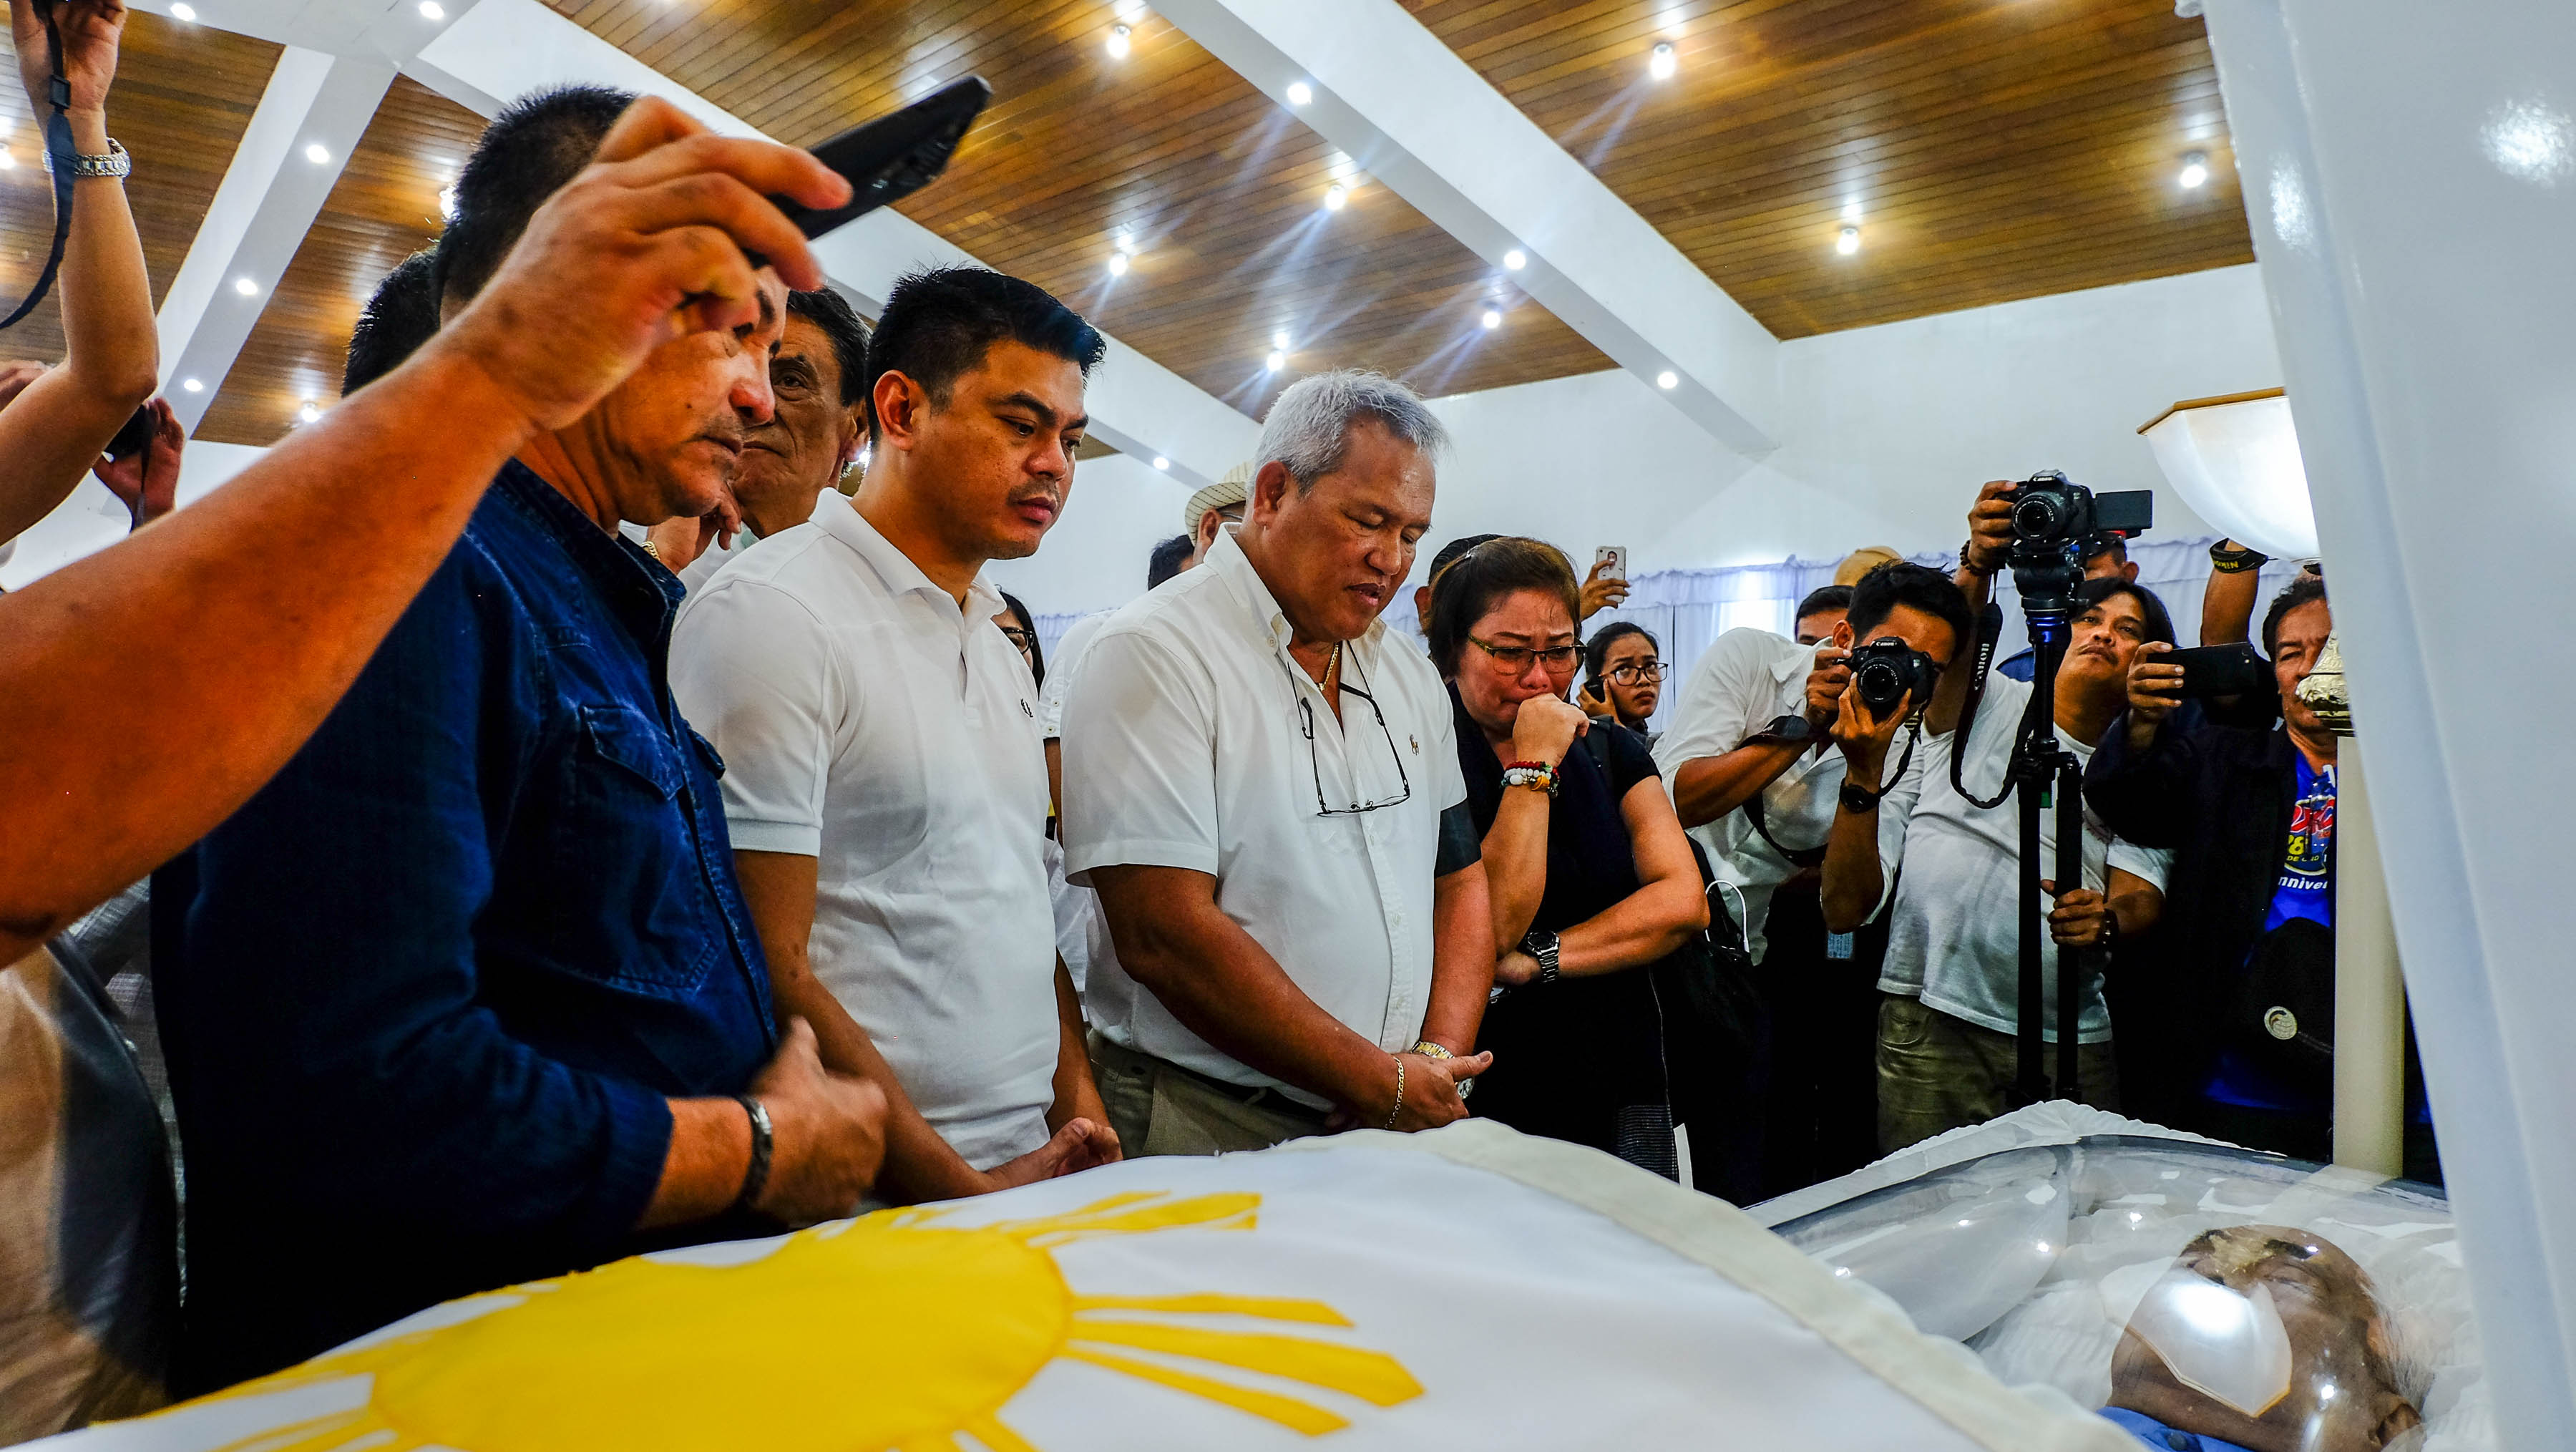 CAGAYAN DE ORO'S SON. Cty officials pay their respects to former Senate president Aquilino PImentel III, including Mayor Oscar Moreno (3rd from left) and Vice mayor Rainier Joaquin Uy to his right. Photo by Bobby Lagsa/Rappler